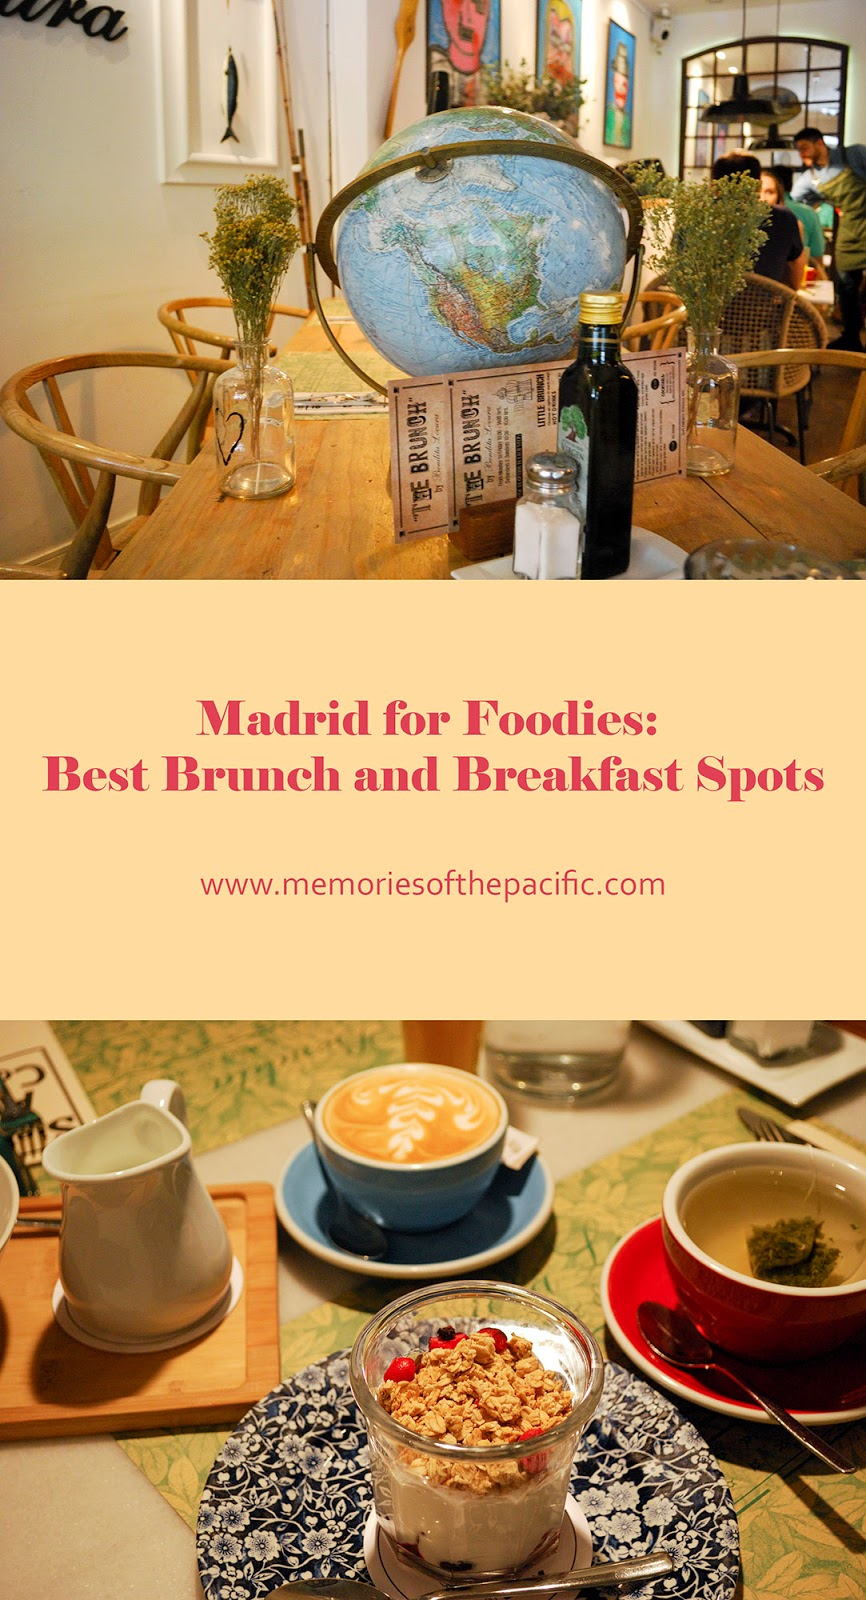 hotel brunch madrid restaurant breakfast spain